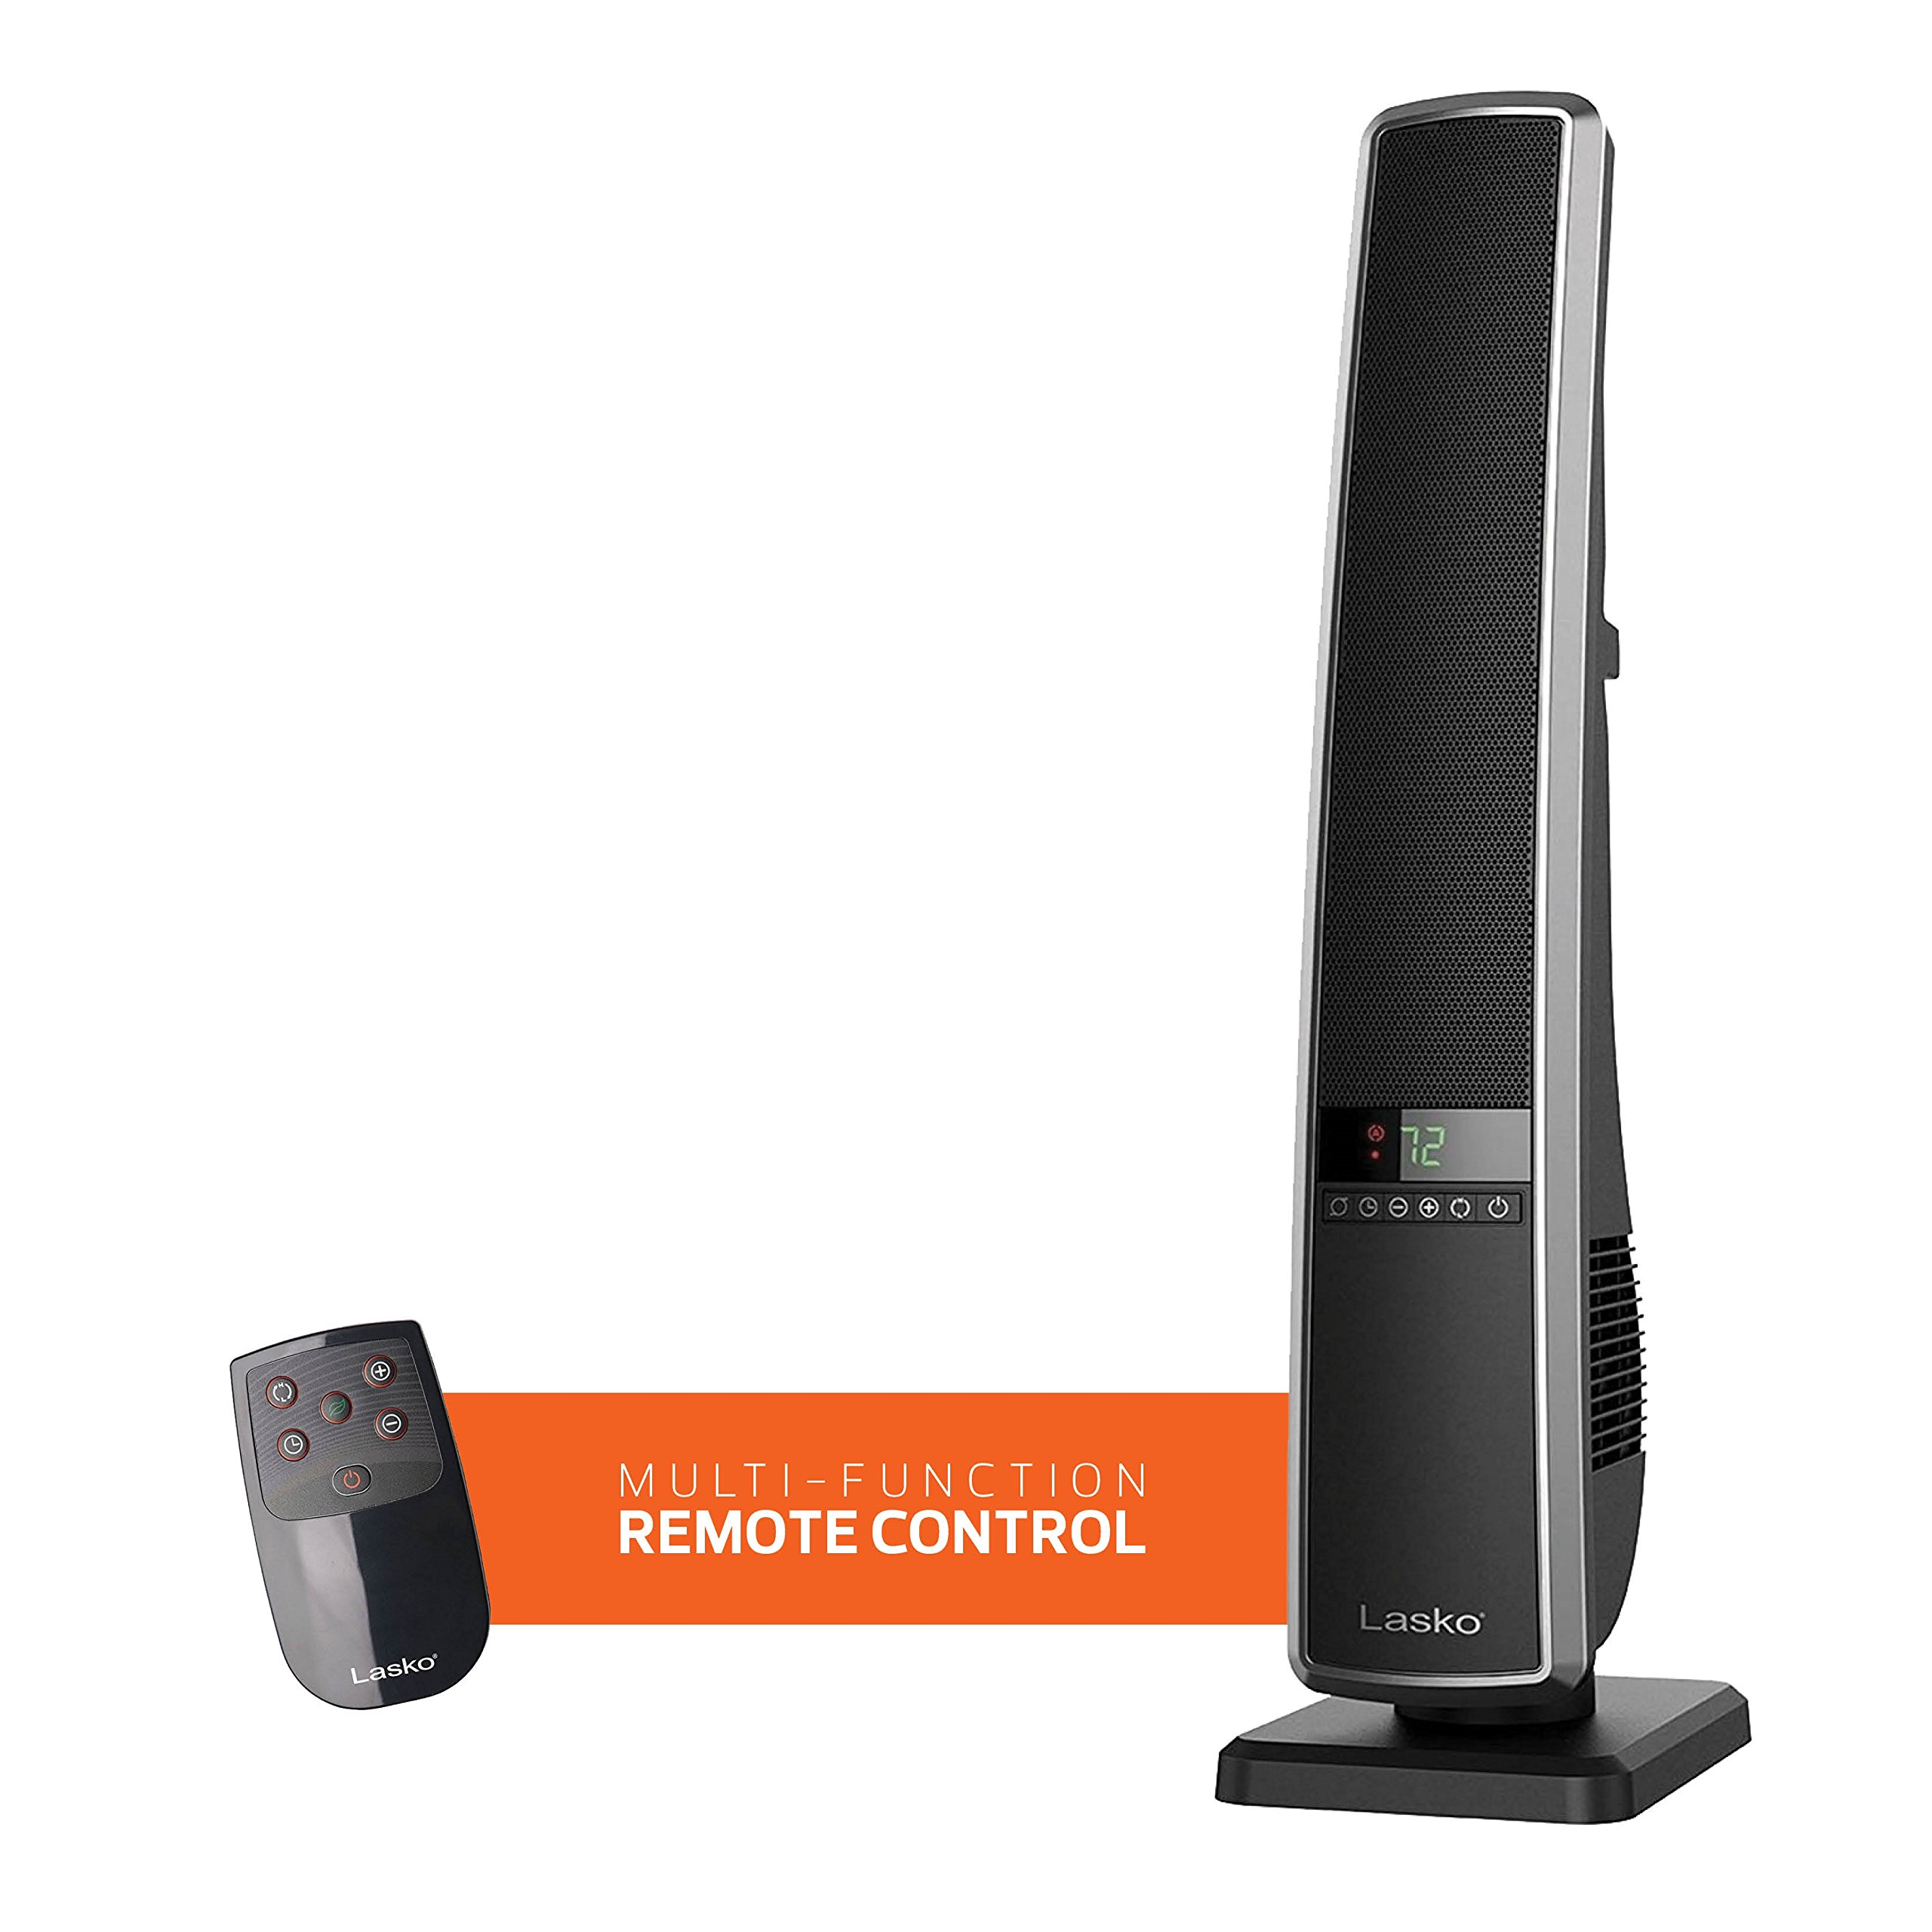 Lasko 32-Inch Digital Ceramic Tower Heater with Multi-Function Remote Control and Widespread Oscillation